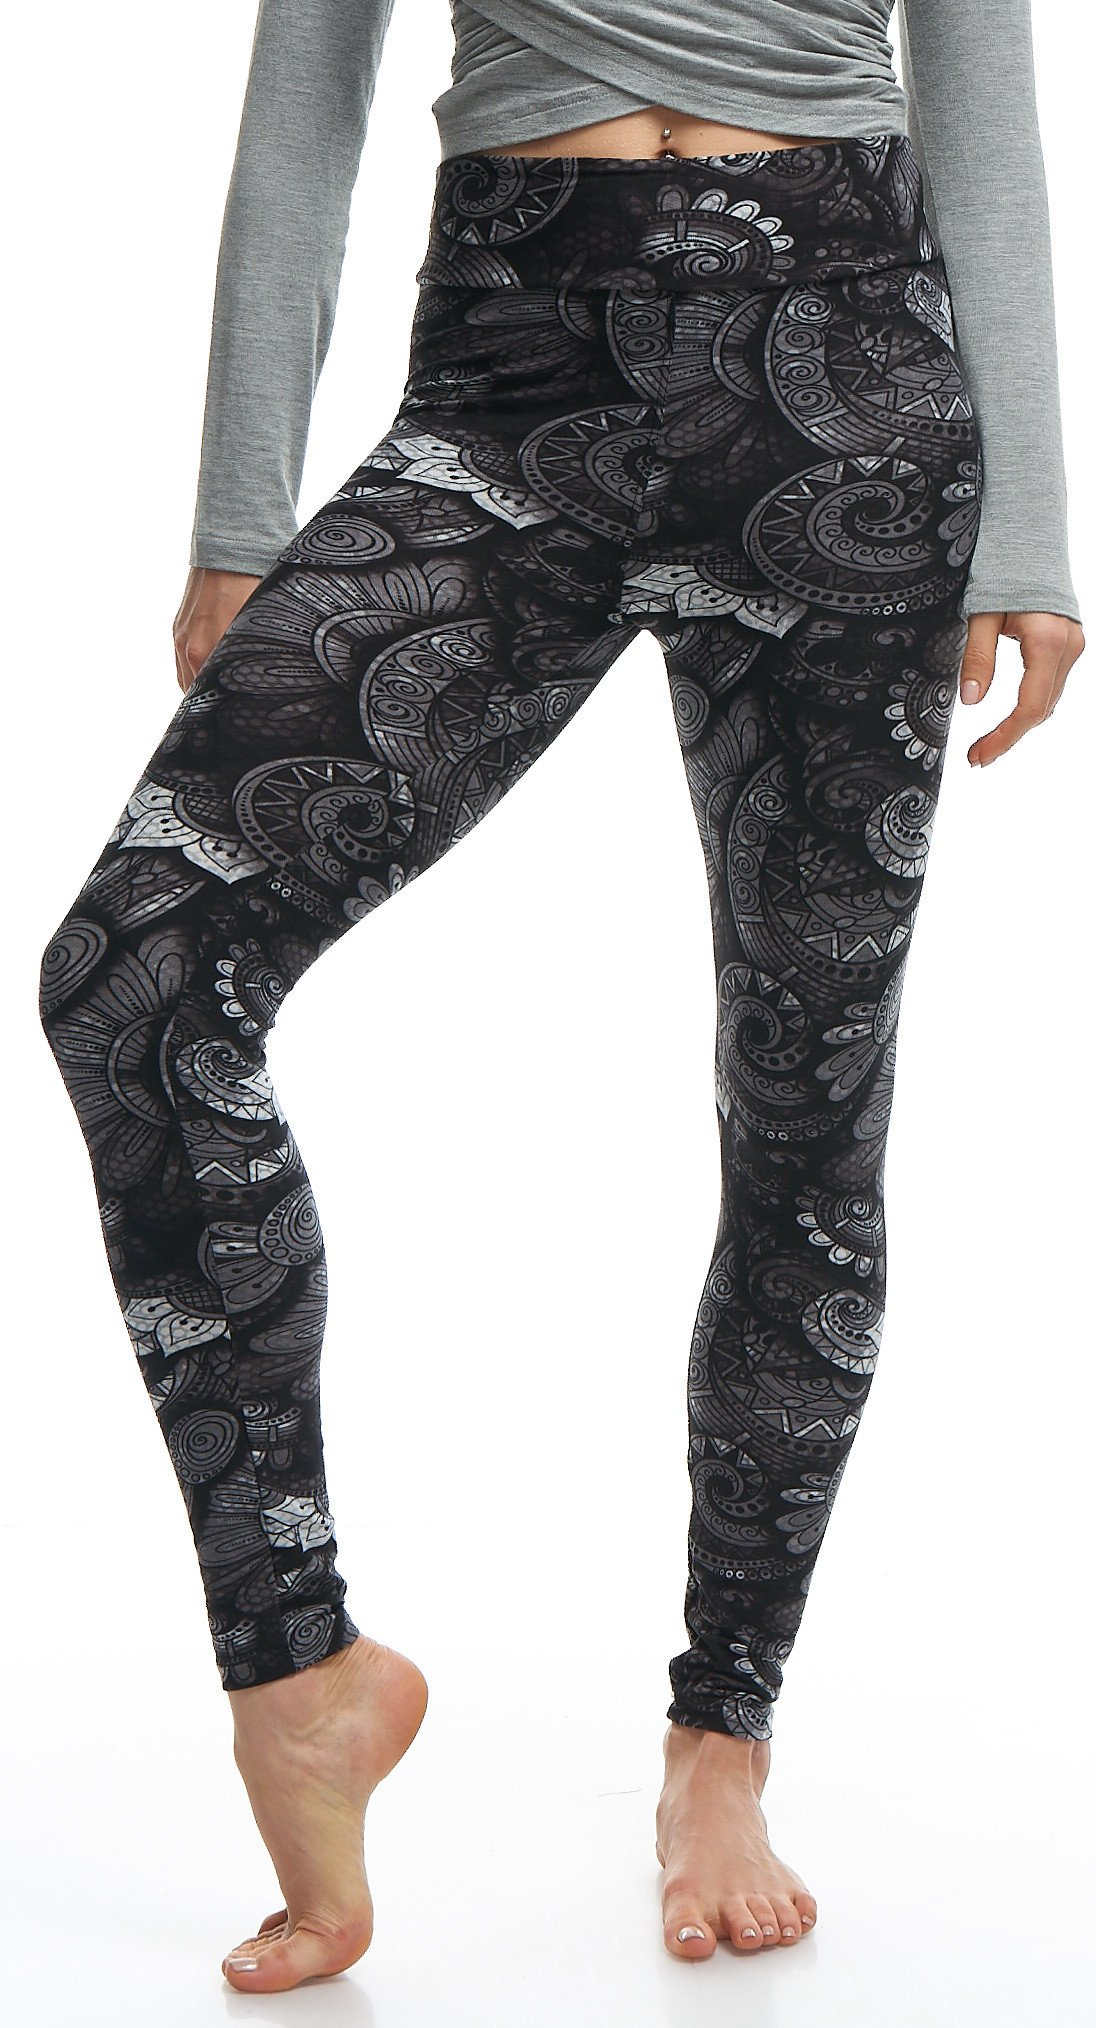 LMB Lush Moda Extra Soft Leggings with Designs- 505YF Floral Abstract Yoga by LMB (Image #2)